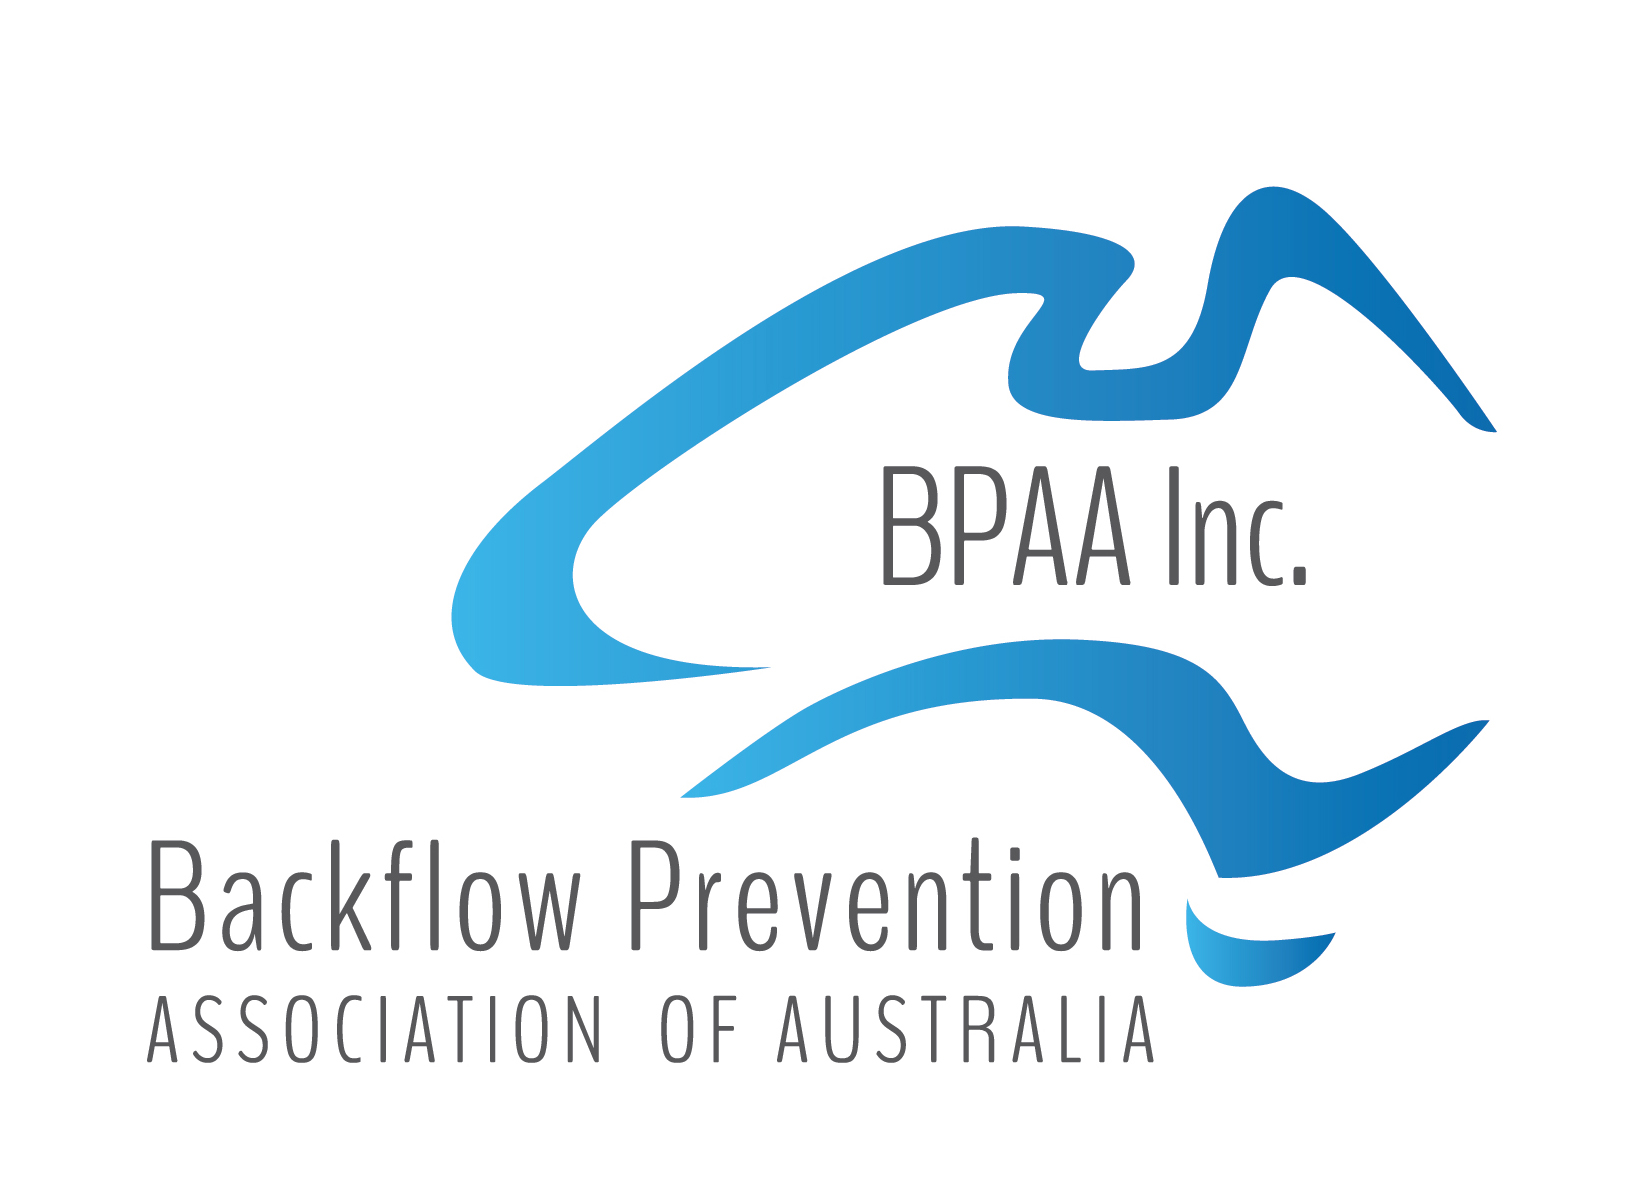 Backflow Prevention Assoc. of Australia